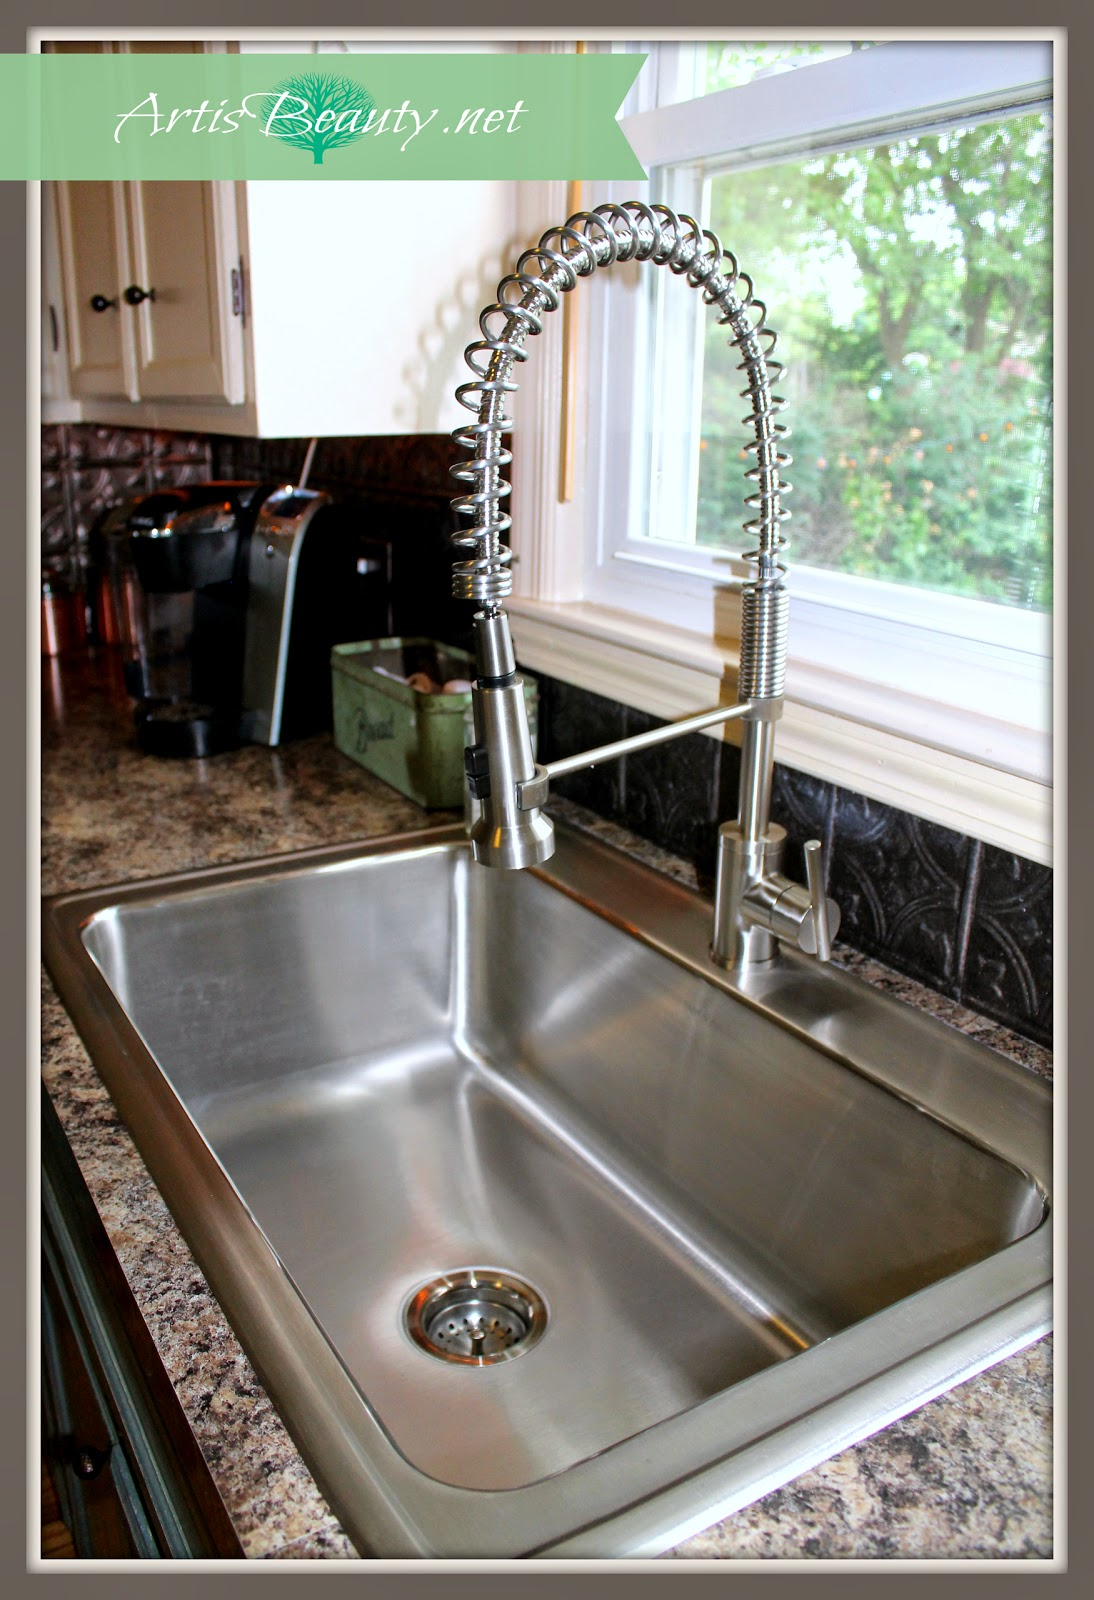 http://arttisbeauty.blogspot.com/2014/06/elkay-kitchen-sink-and-parma-faucet.html